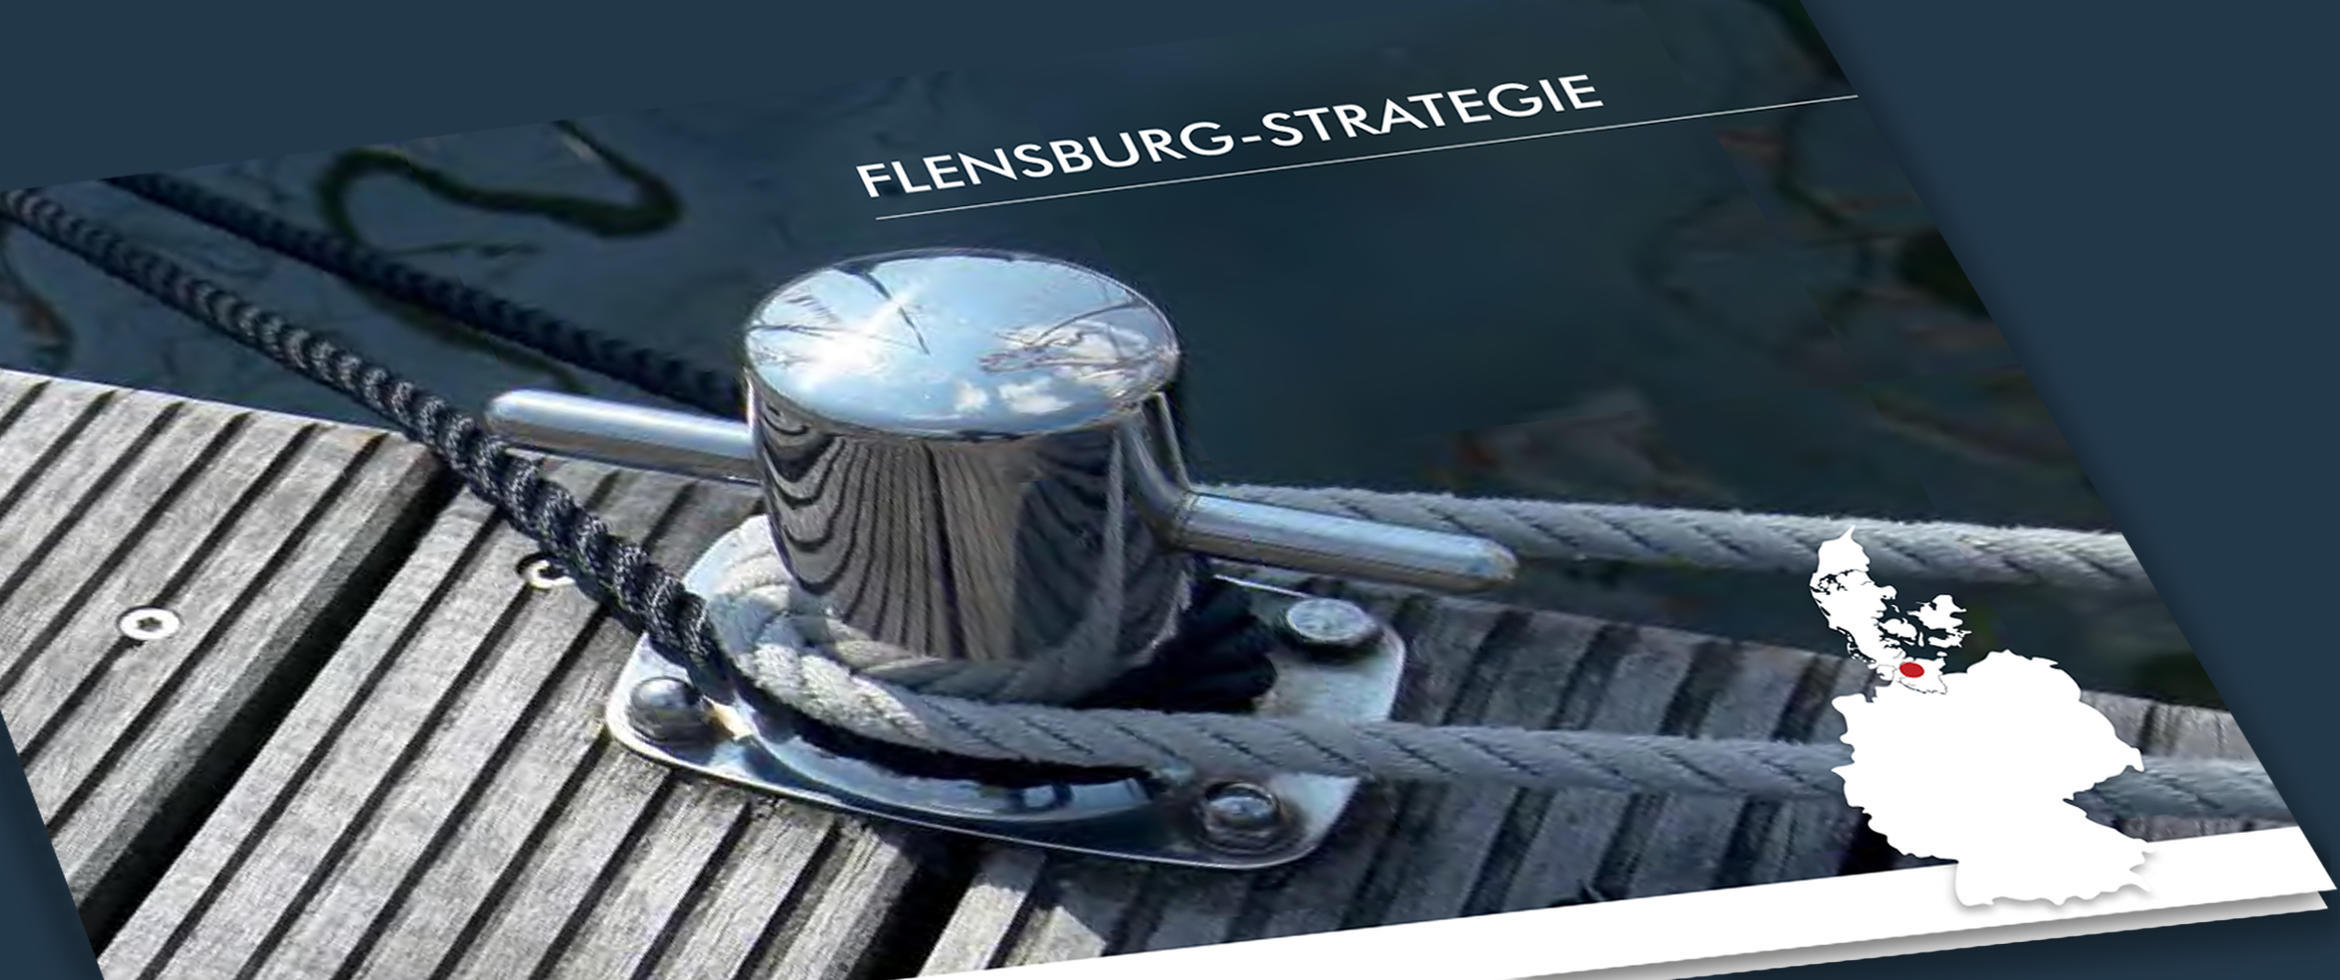 Flyer_FL_Strategie.indd © Stadt Flensurg